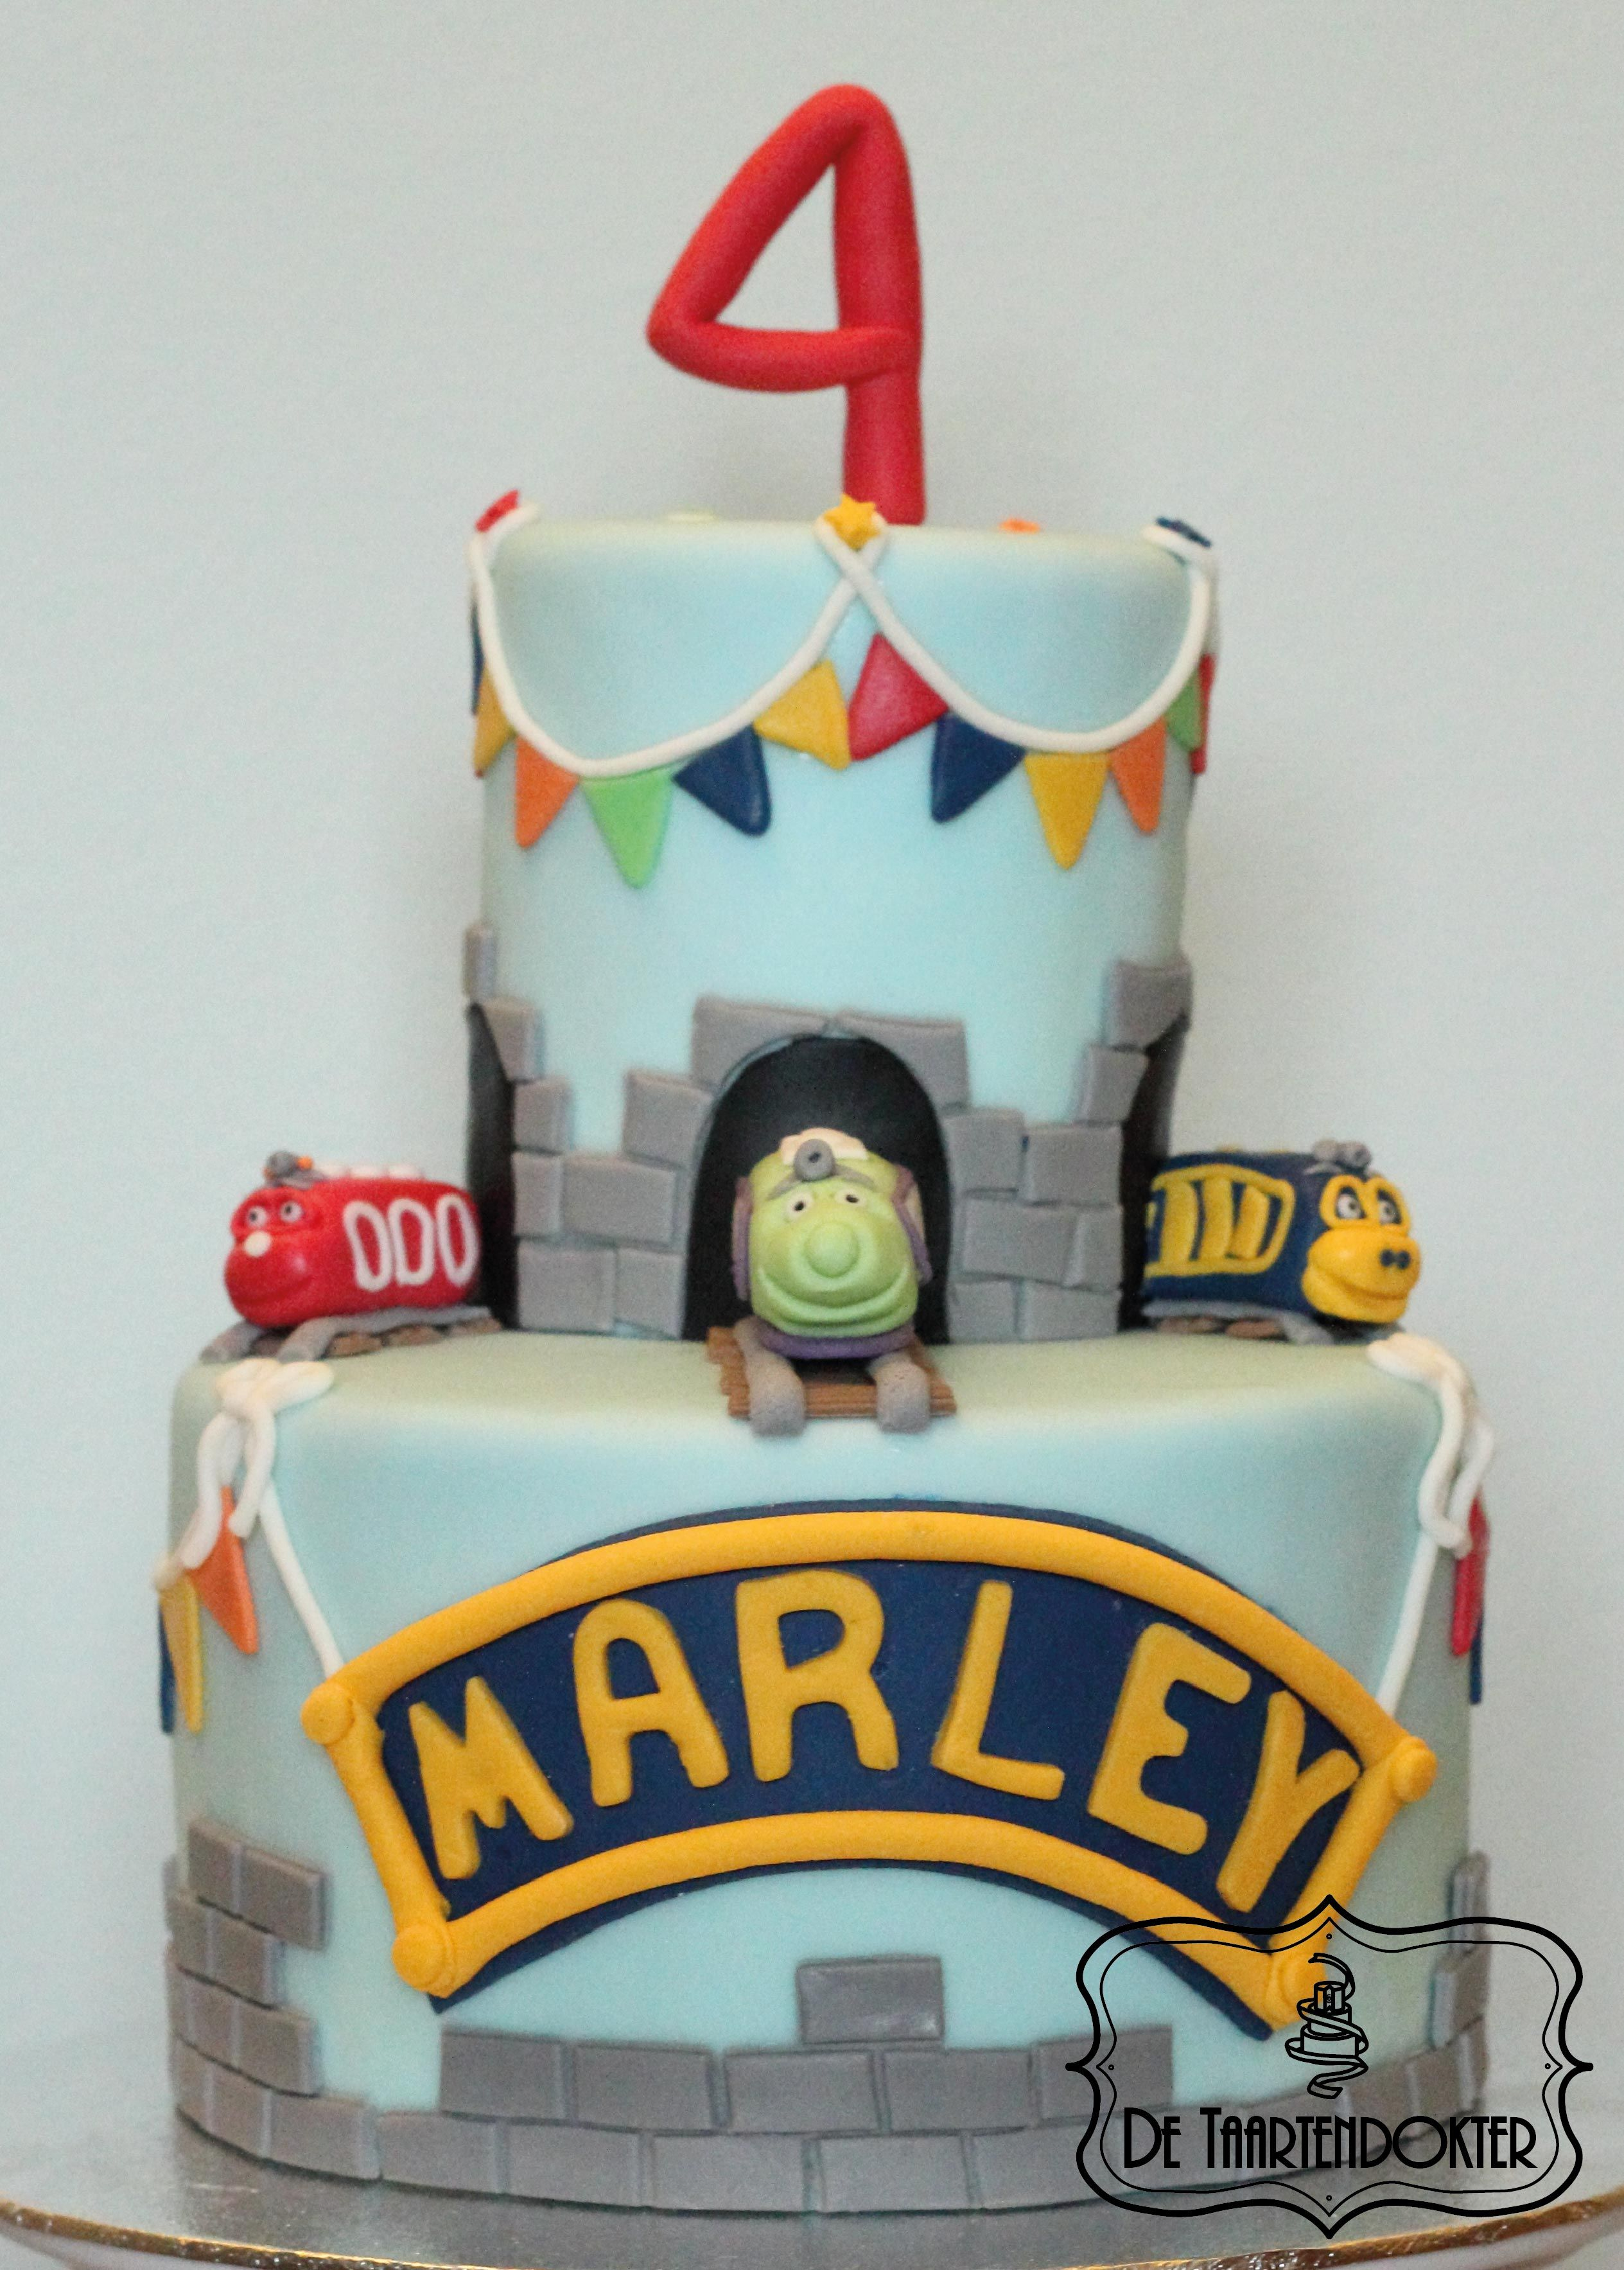 Chuggington Cake De Taartendokter The Cake Doctor Pinterest - Chuggington birthday cake